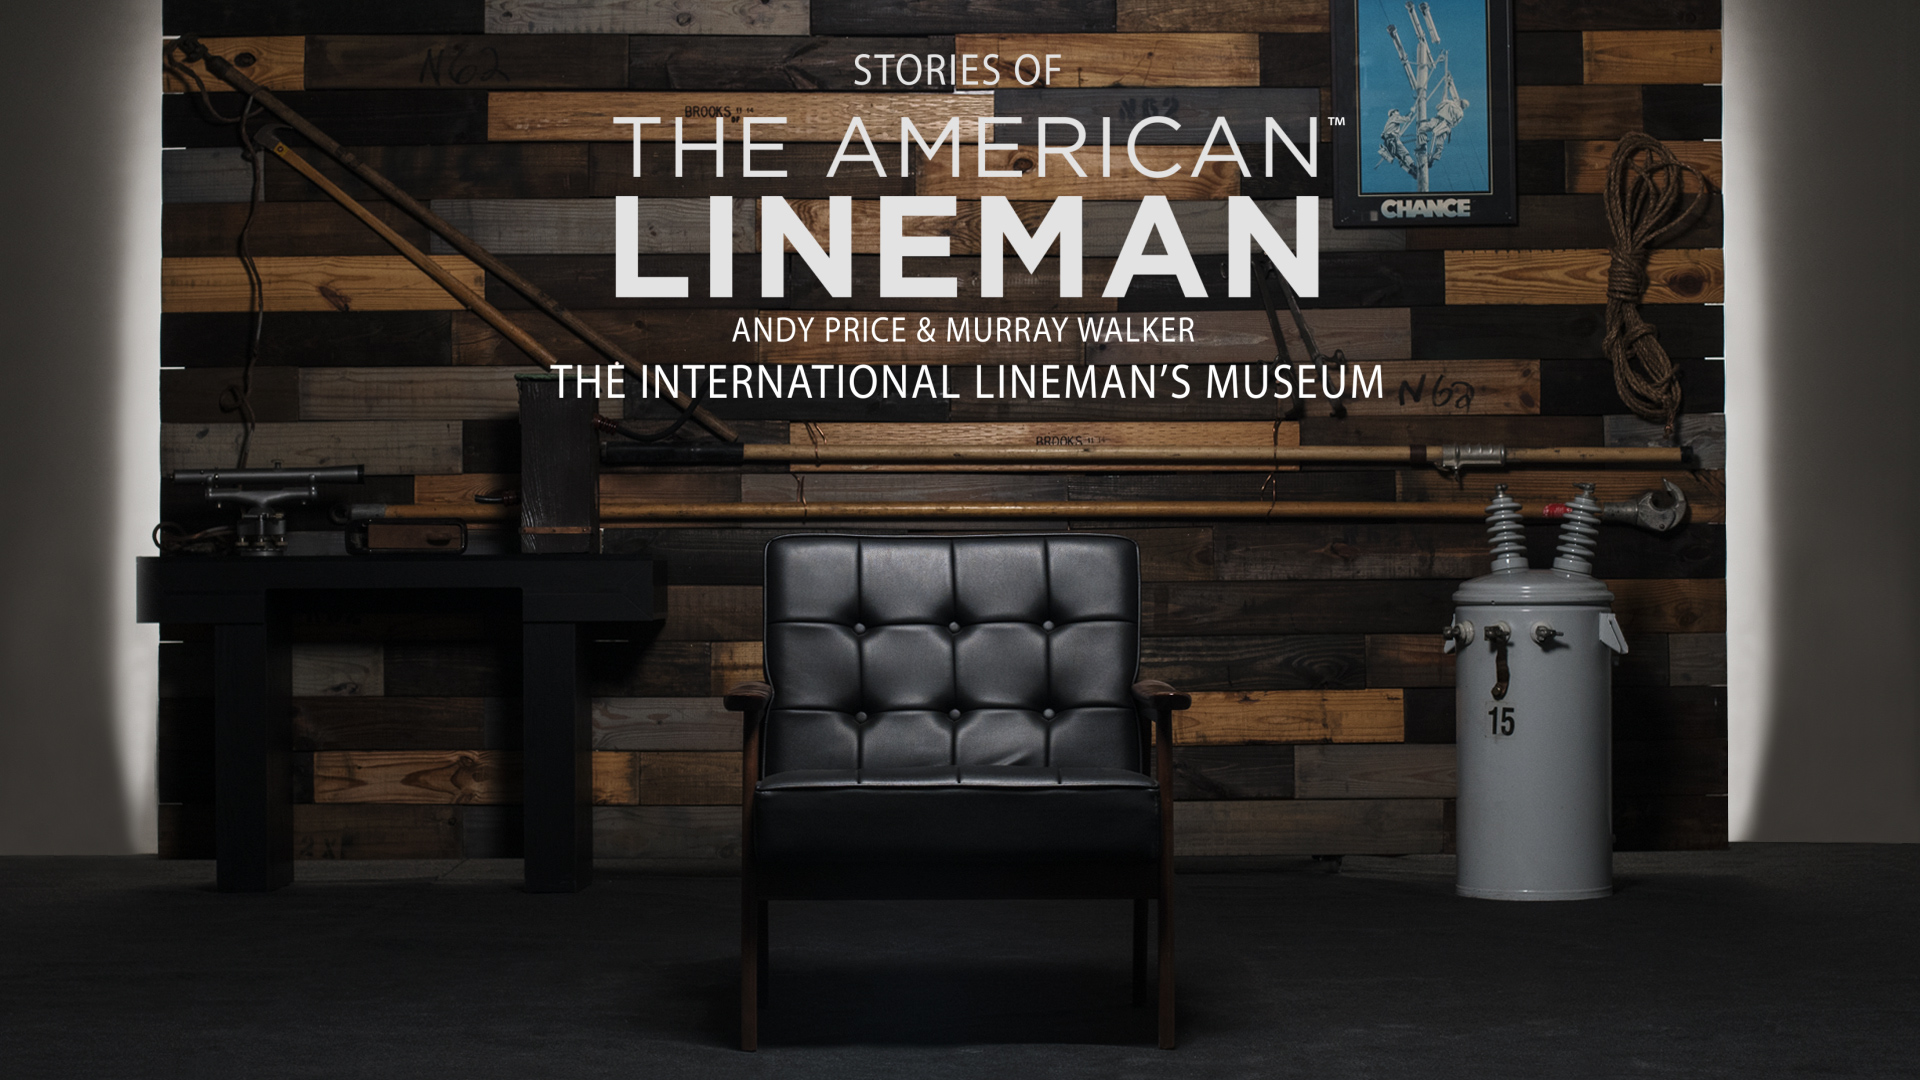 Andy Price & Murray Walker - The International Lineman's Museum